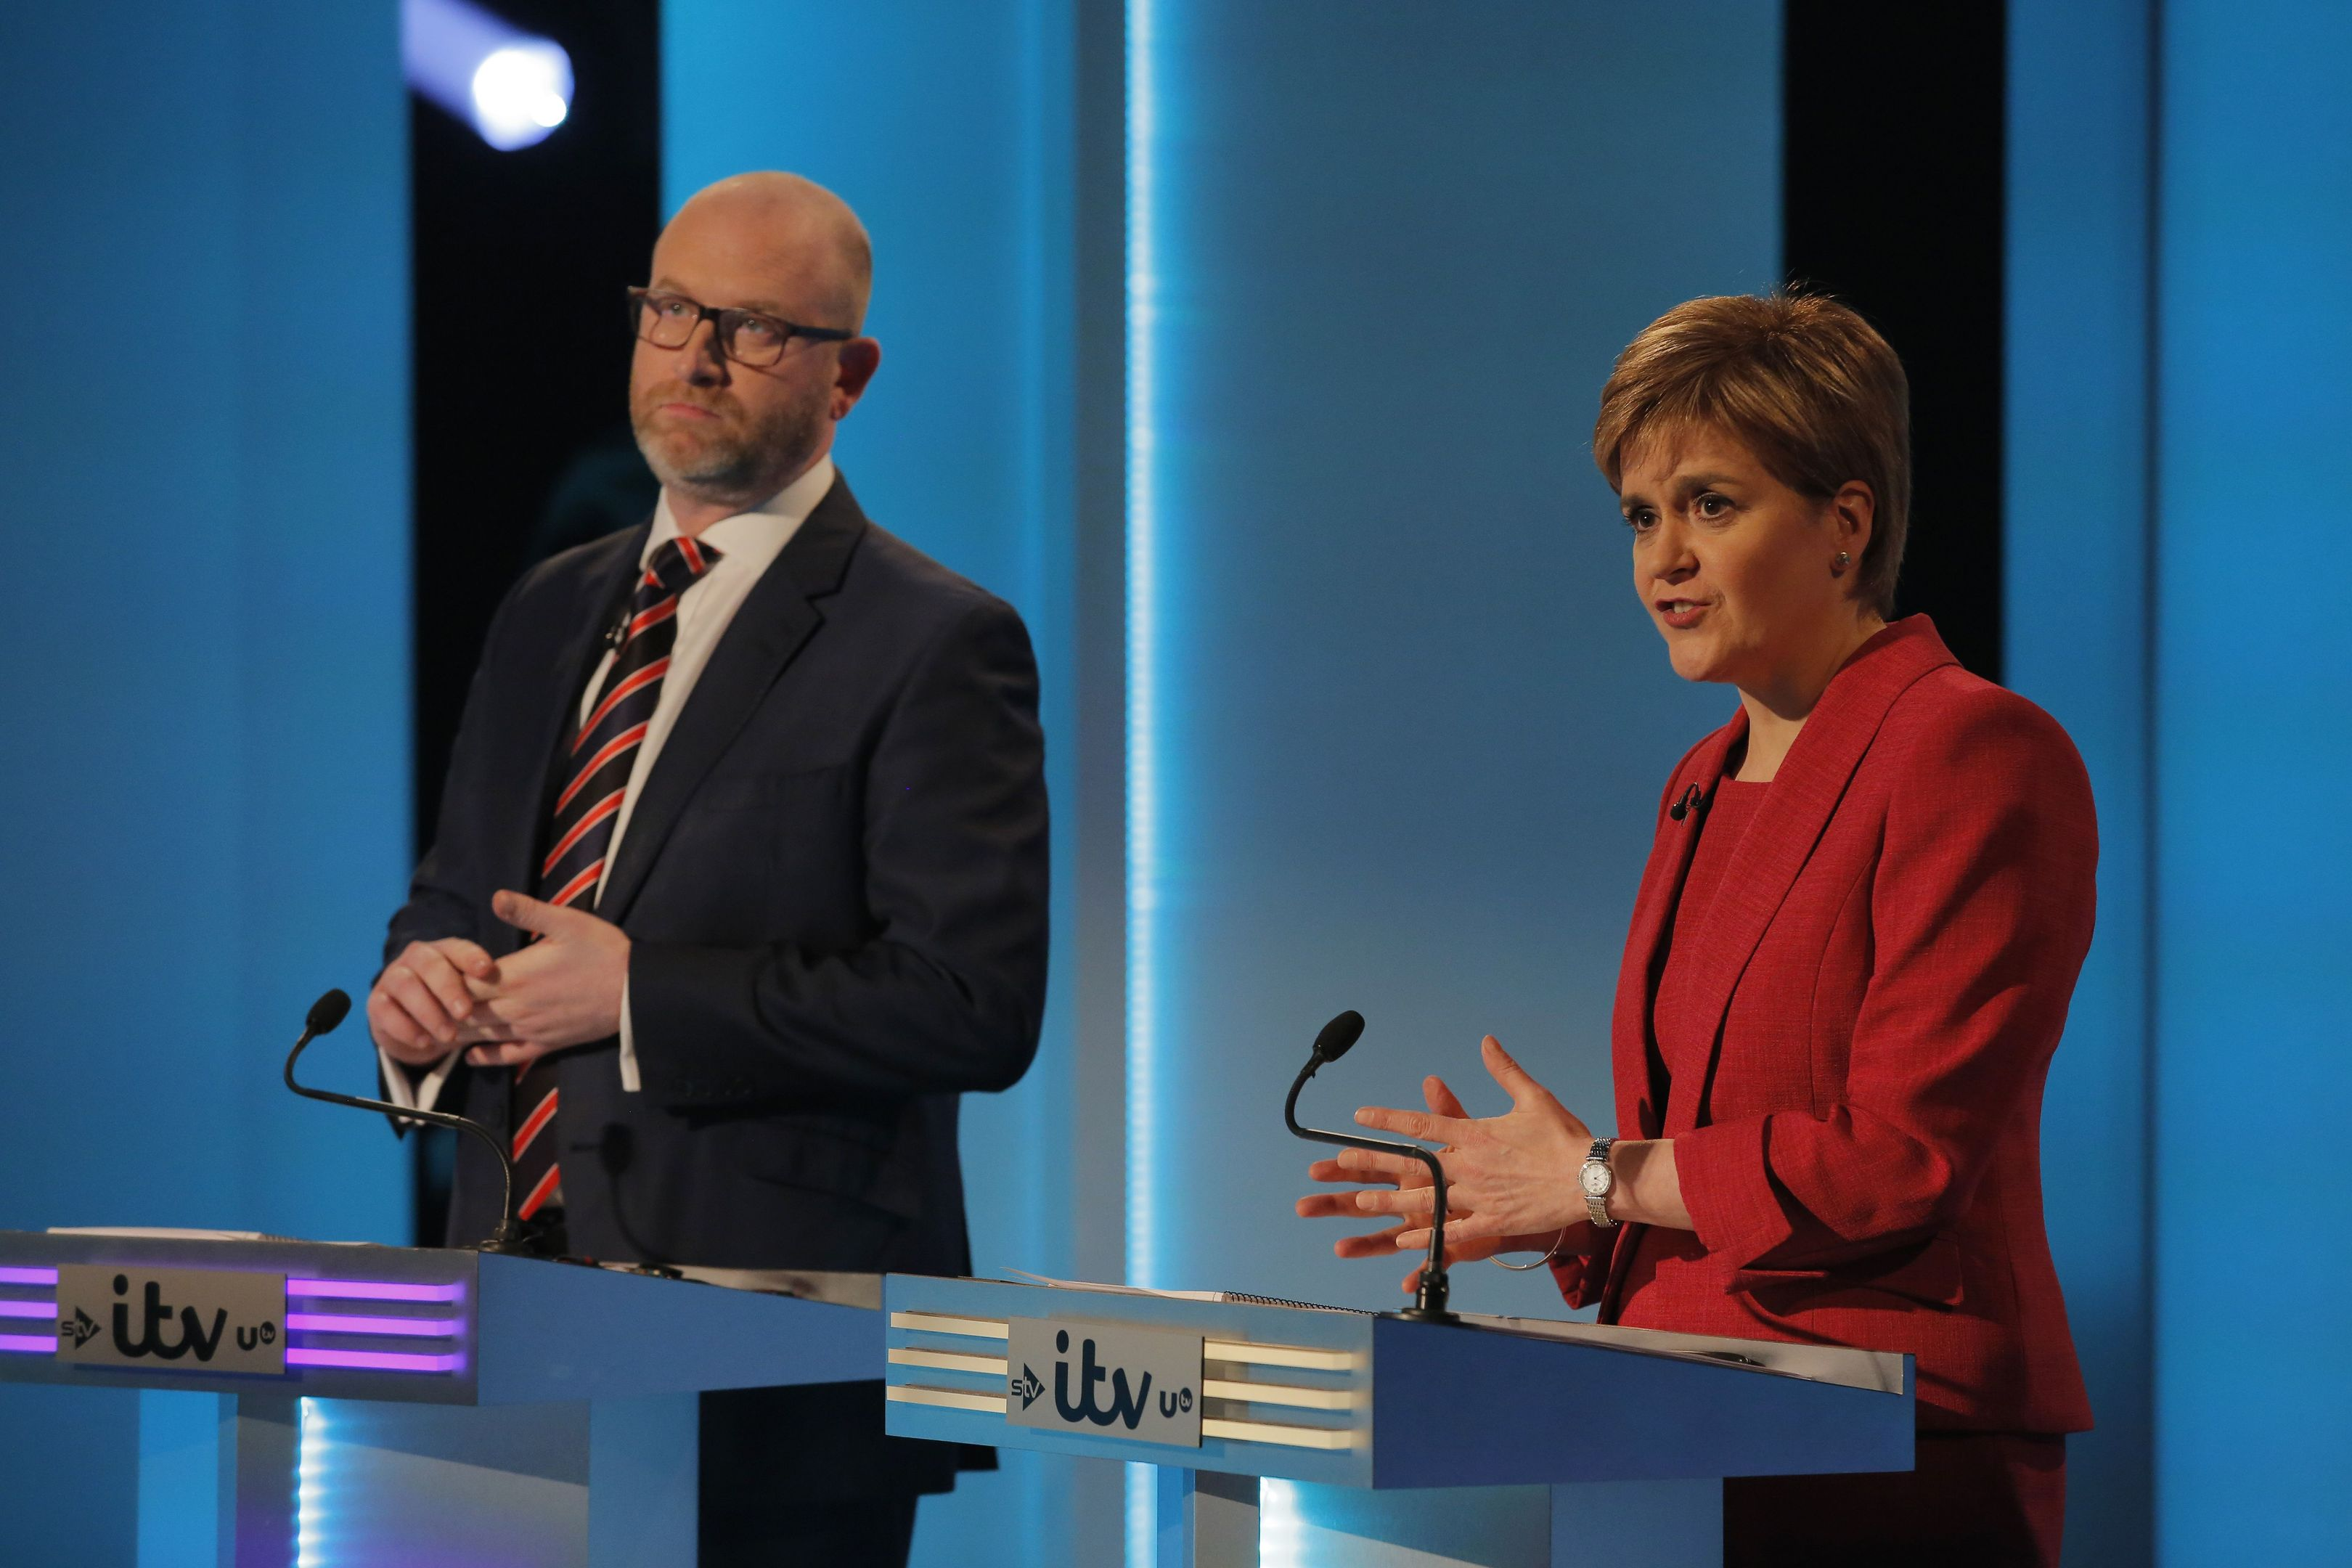 Nicola Sturgeon debating alongside Ukip leader Paul Nuttall.